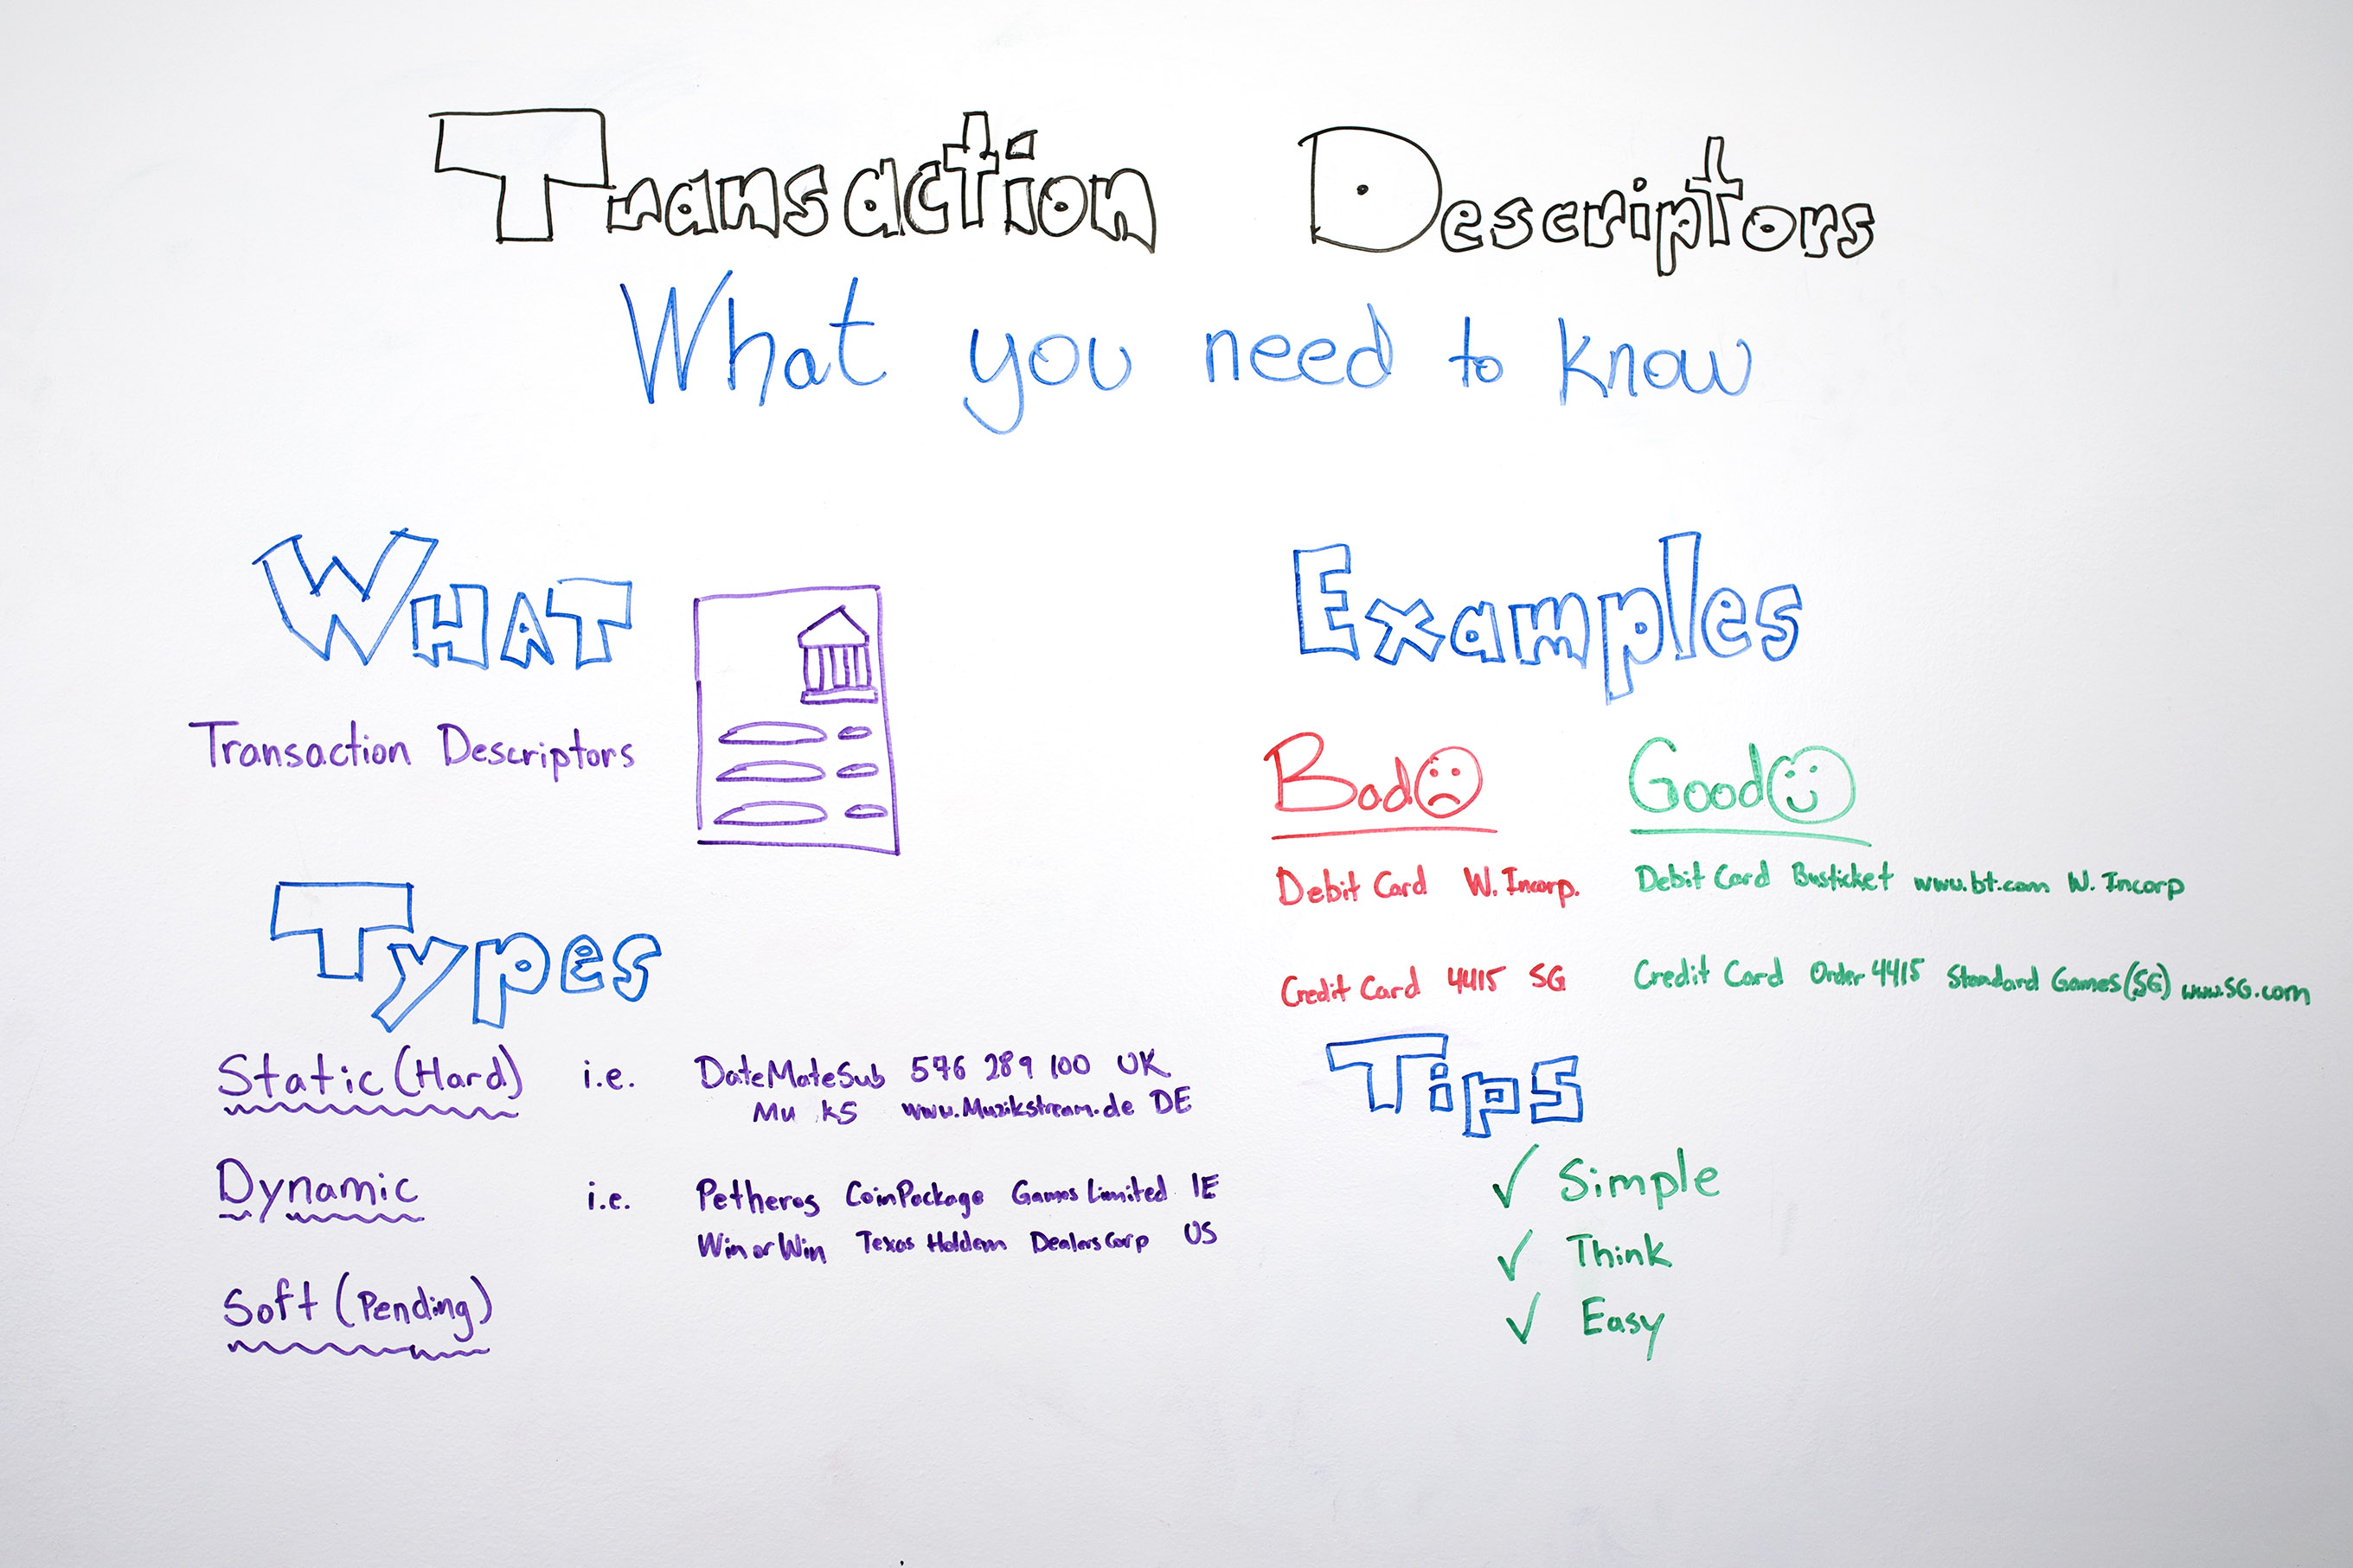 What are transaction descriptors?